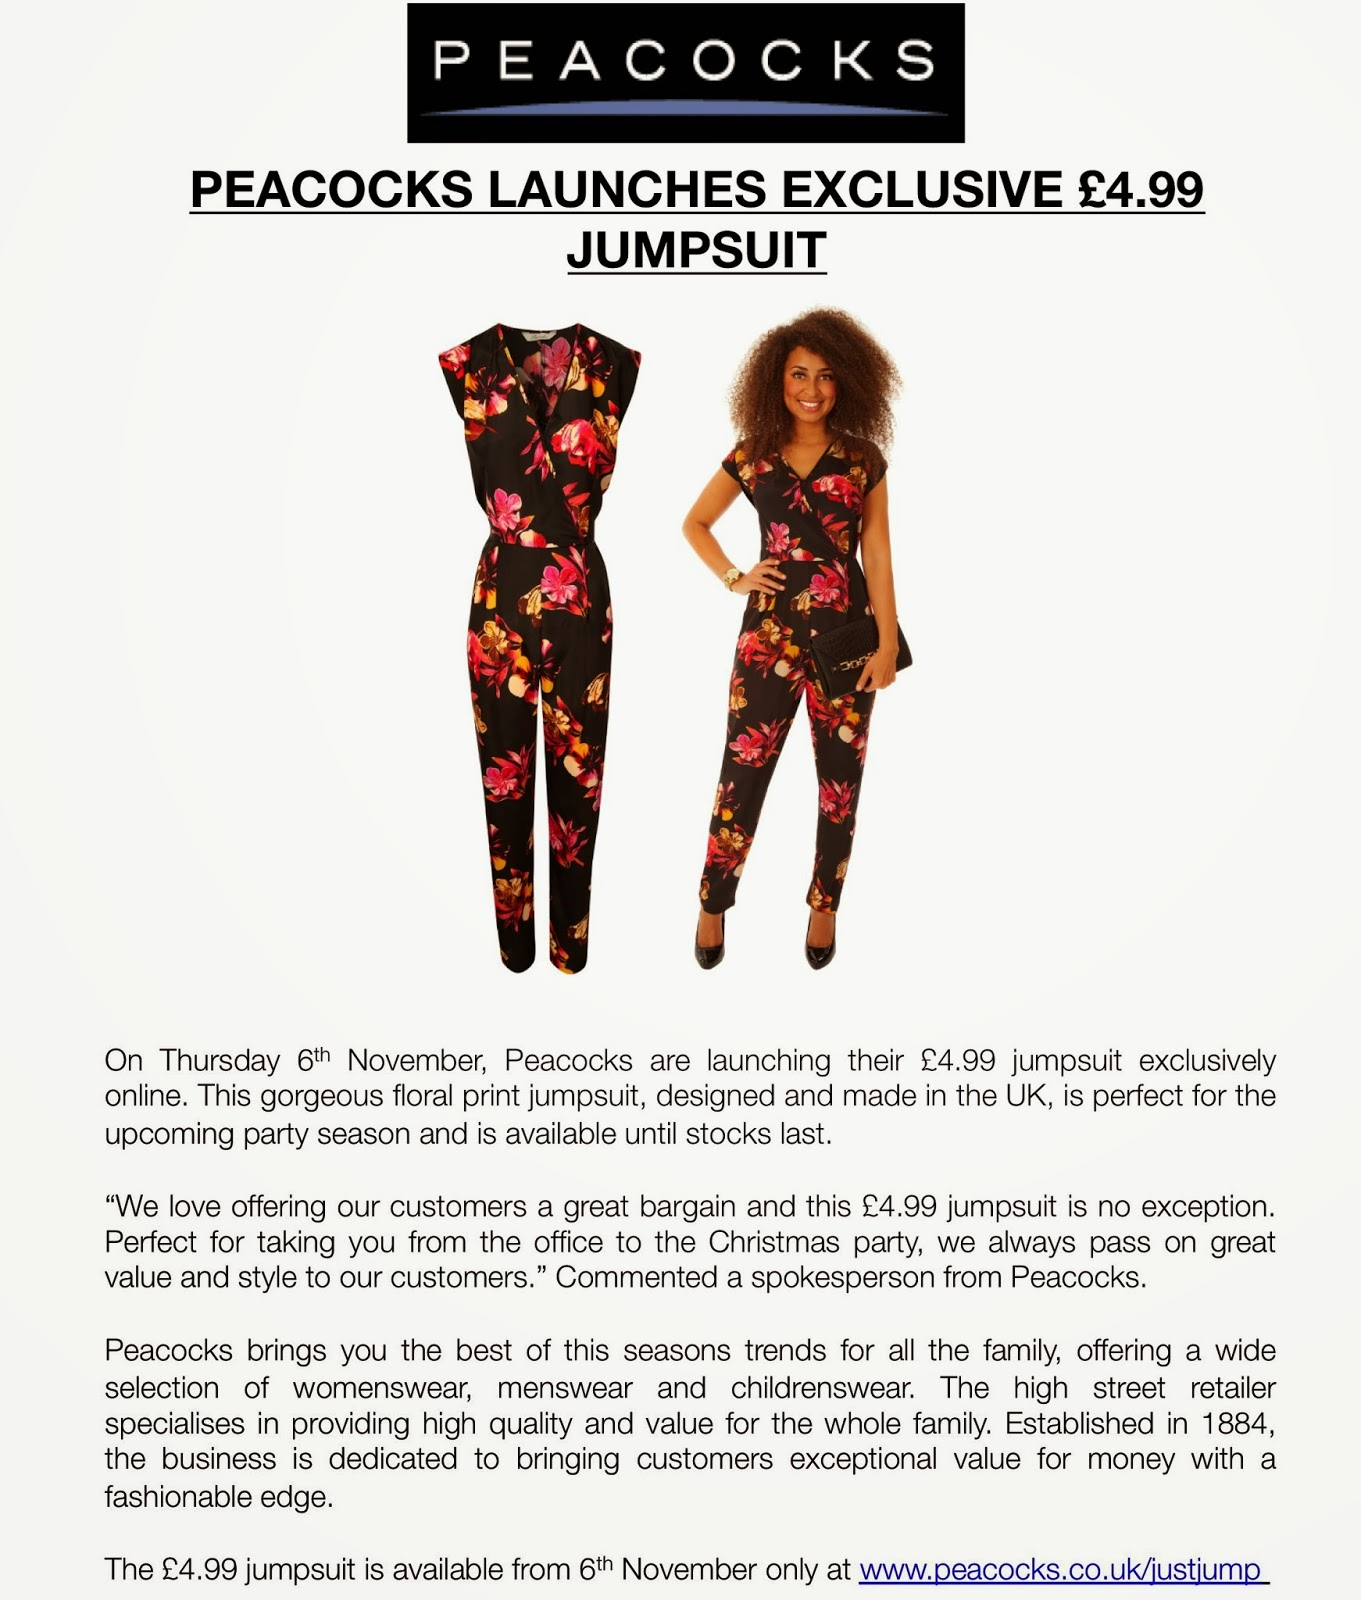 8bd06346327 frumpy to funky  Peacocks launches exclusive £4.99 Jumpsuit